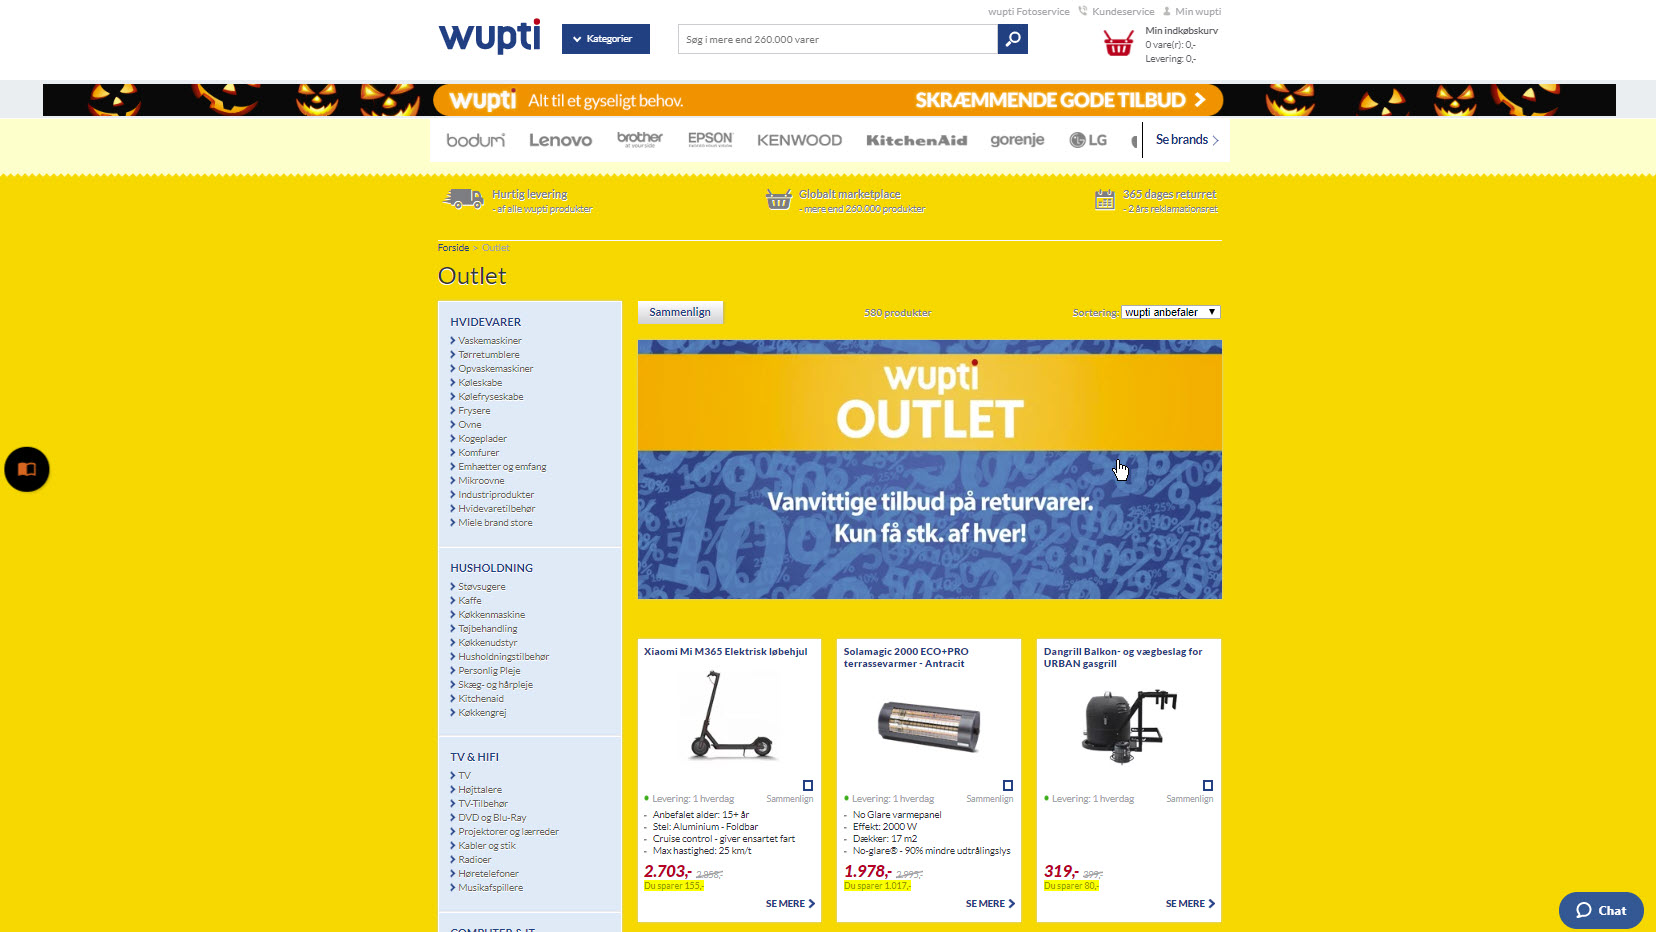 Wupti.com outlet